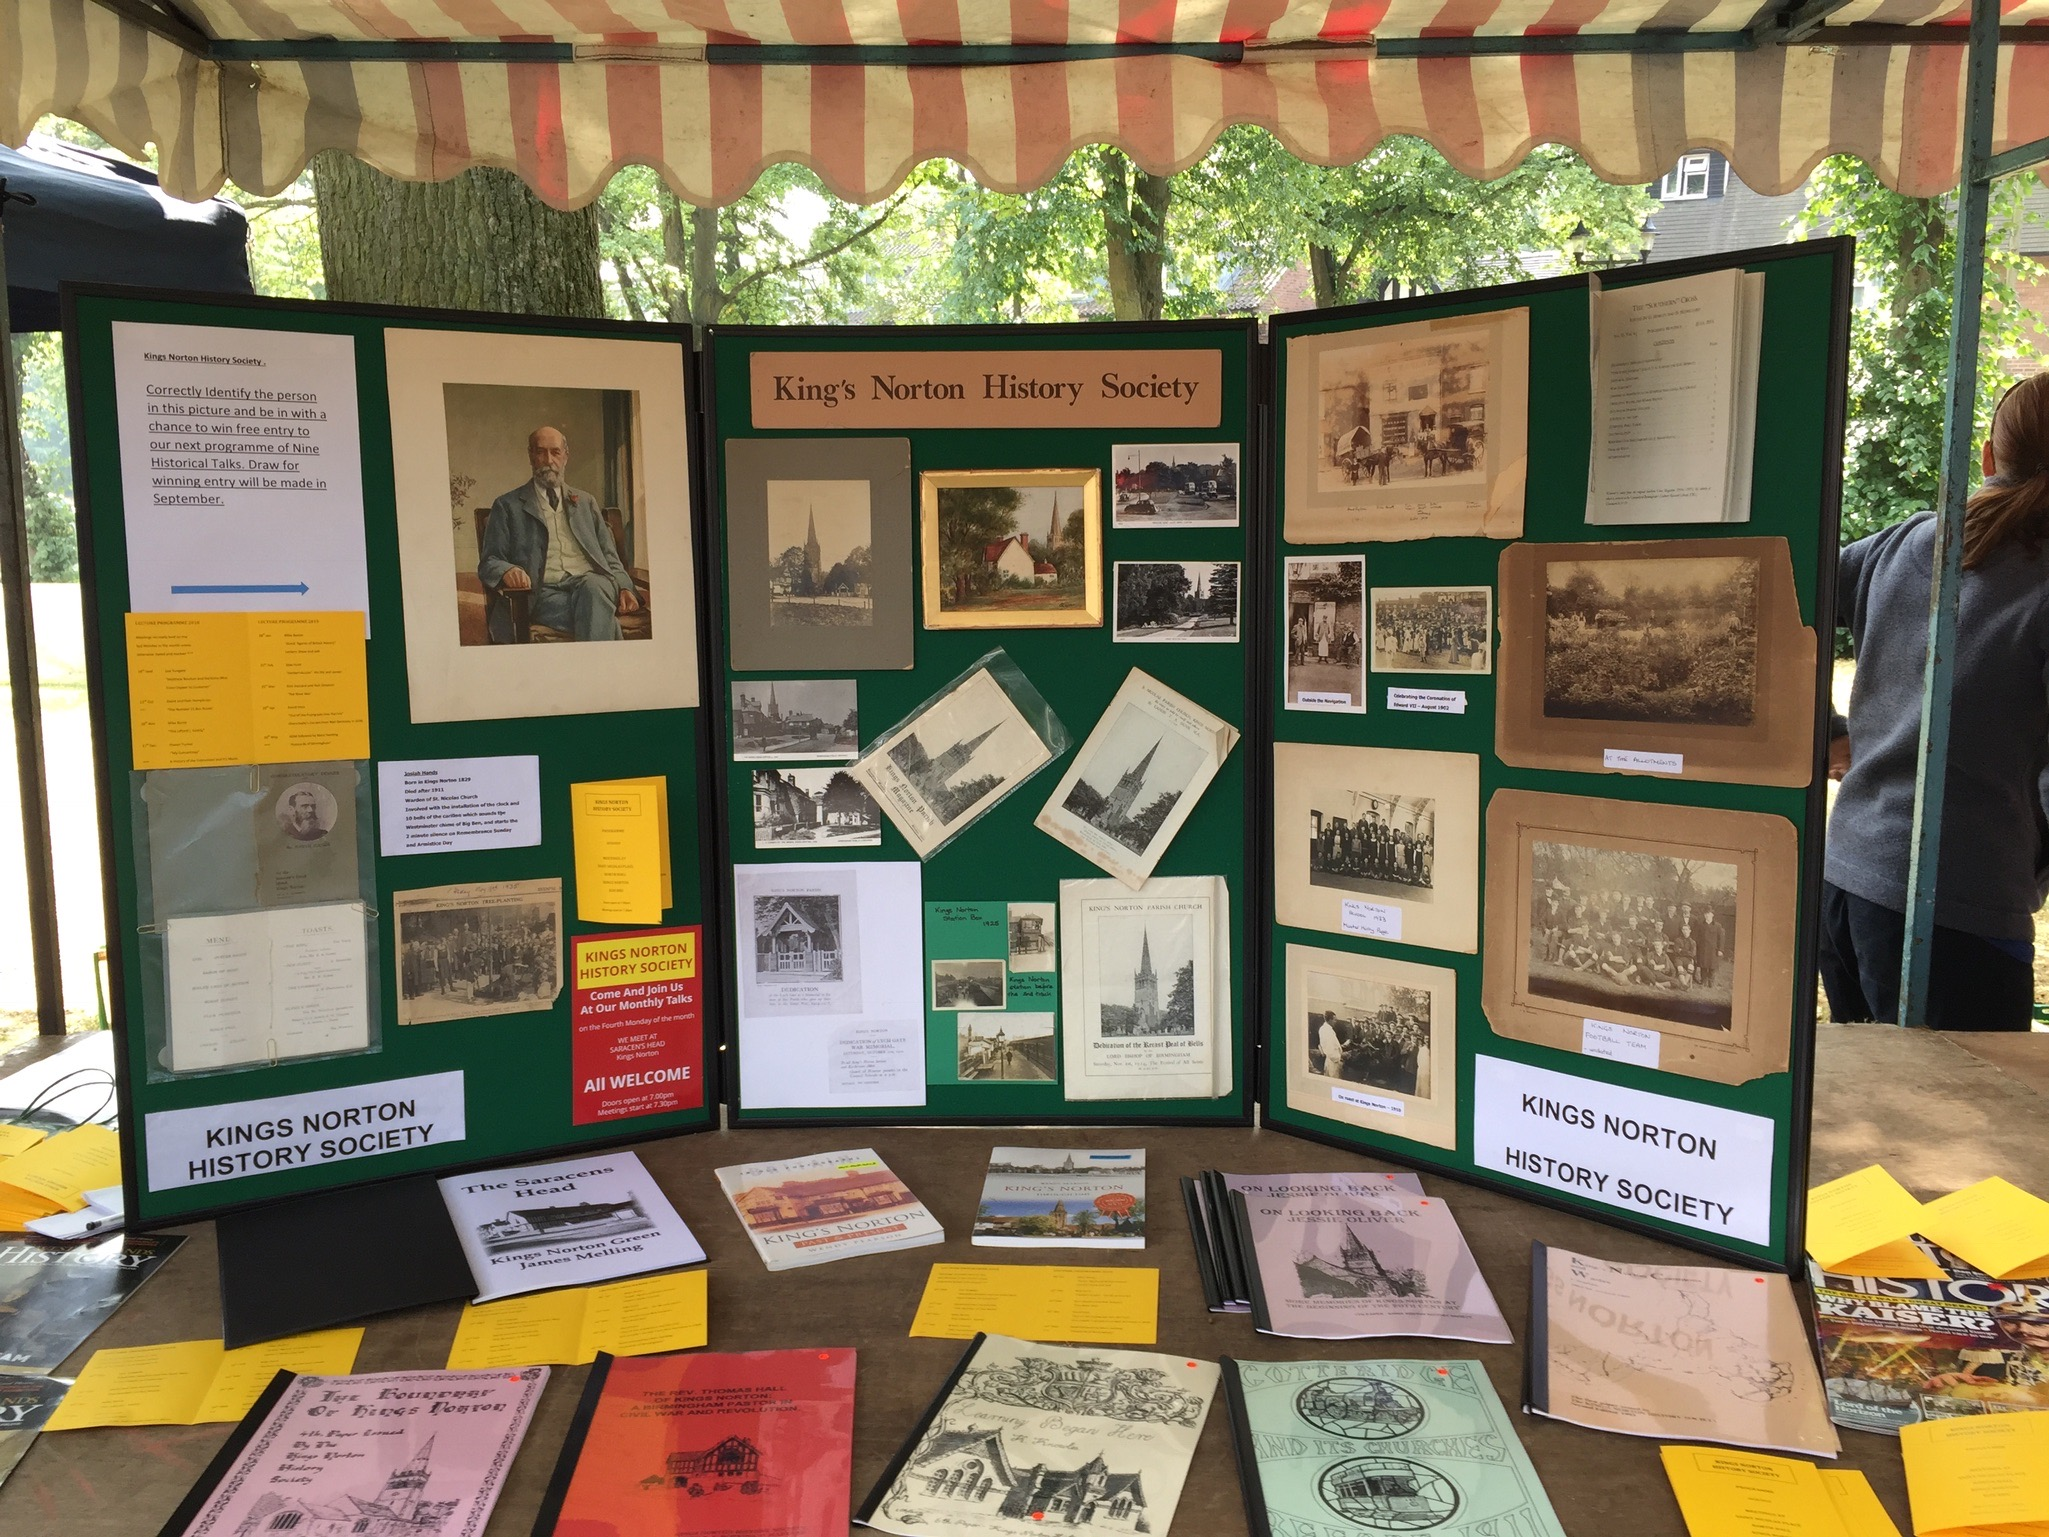 Kings Norton History Society - The chair of the society supervised a stall at the July market showing interesting historical images of people and places around Kings Norton.